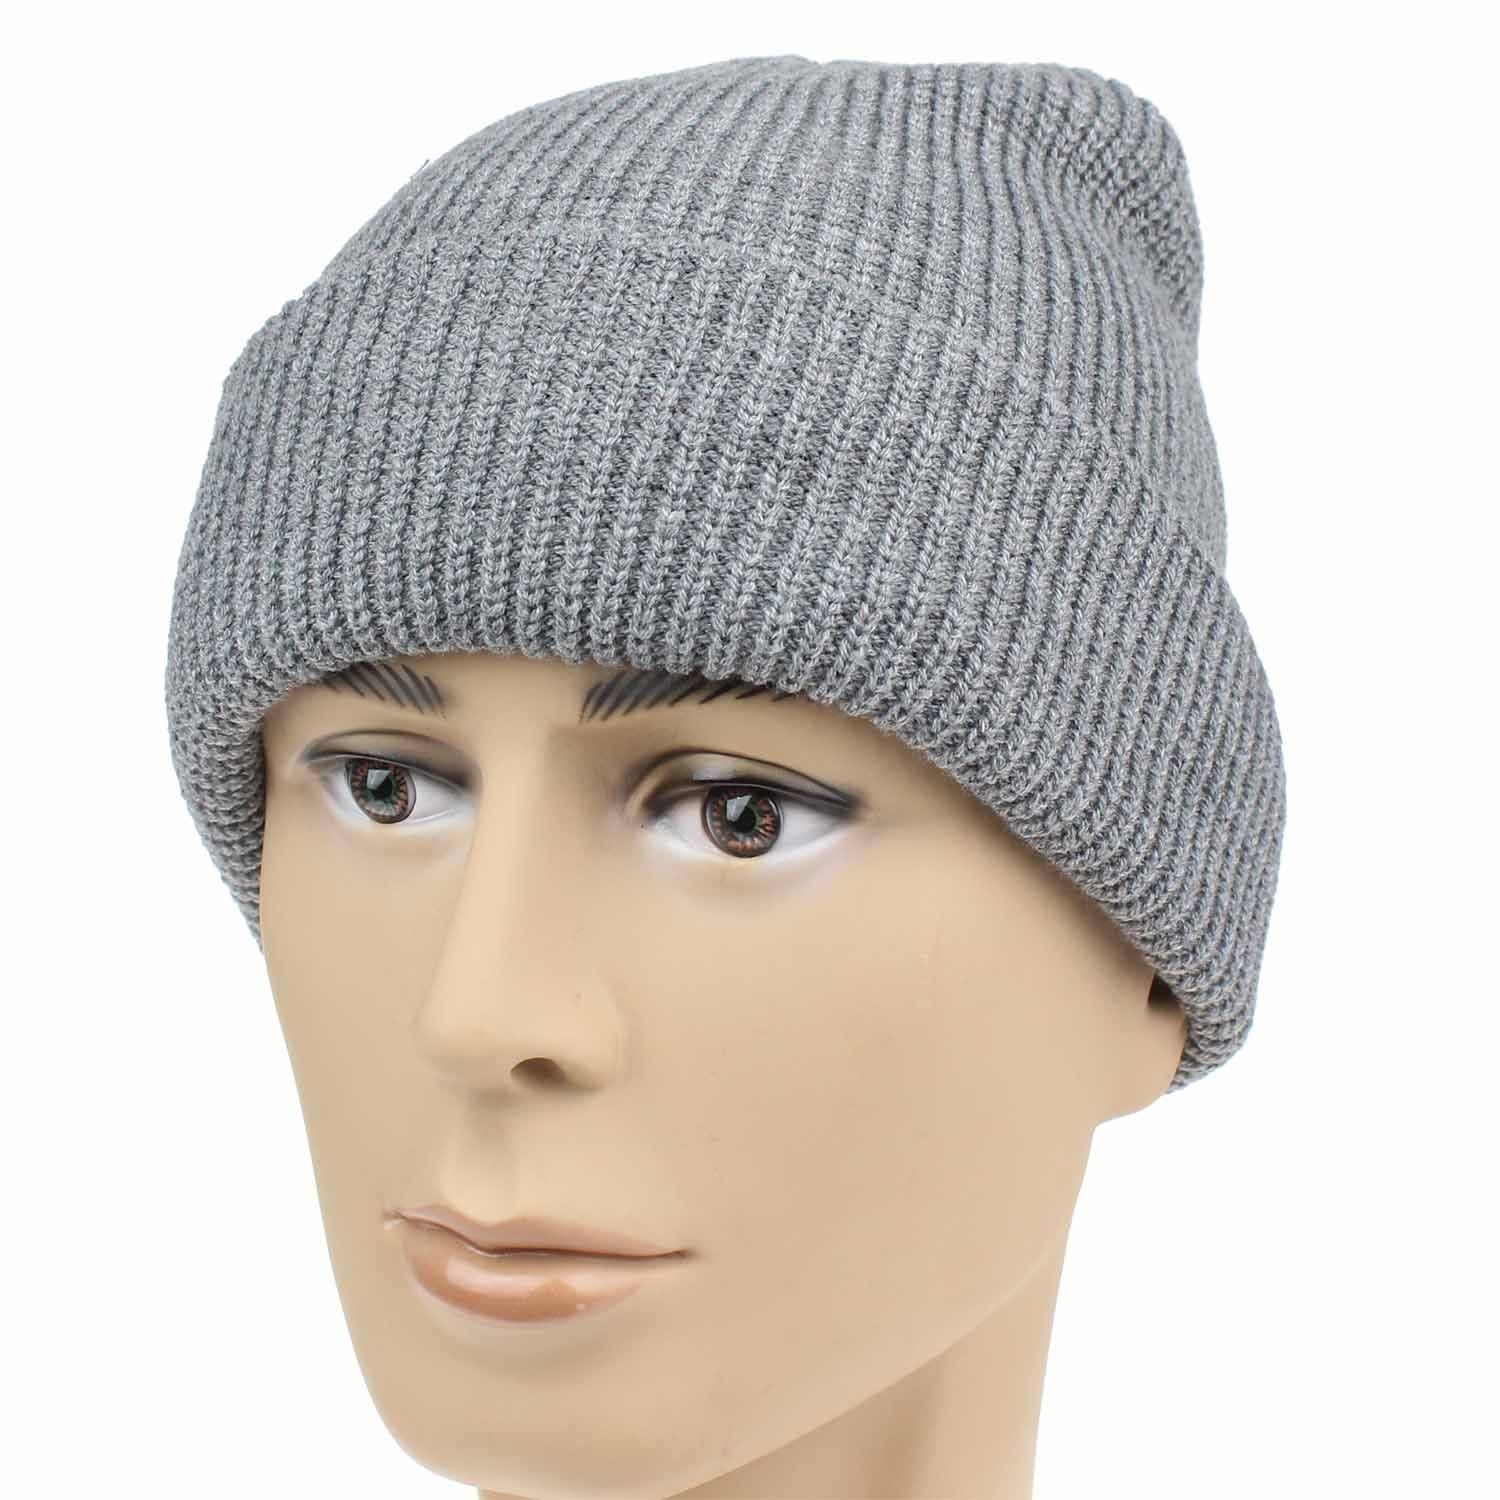 eadd14a11f6 Hats & Caps, Men's Hats & Caps, Skullies & Beanies, Unisex Thick Cable Knit  Beanie Hat Winter Cap Skull Windproof For Men & Women - Grey - CP12MY8LELR # caps ...